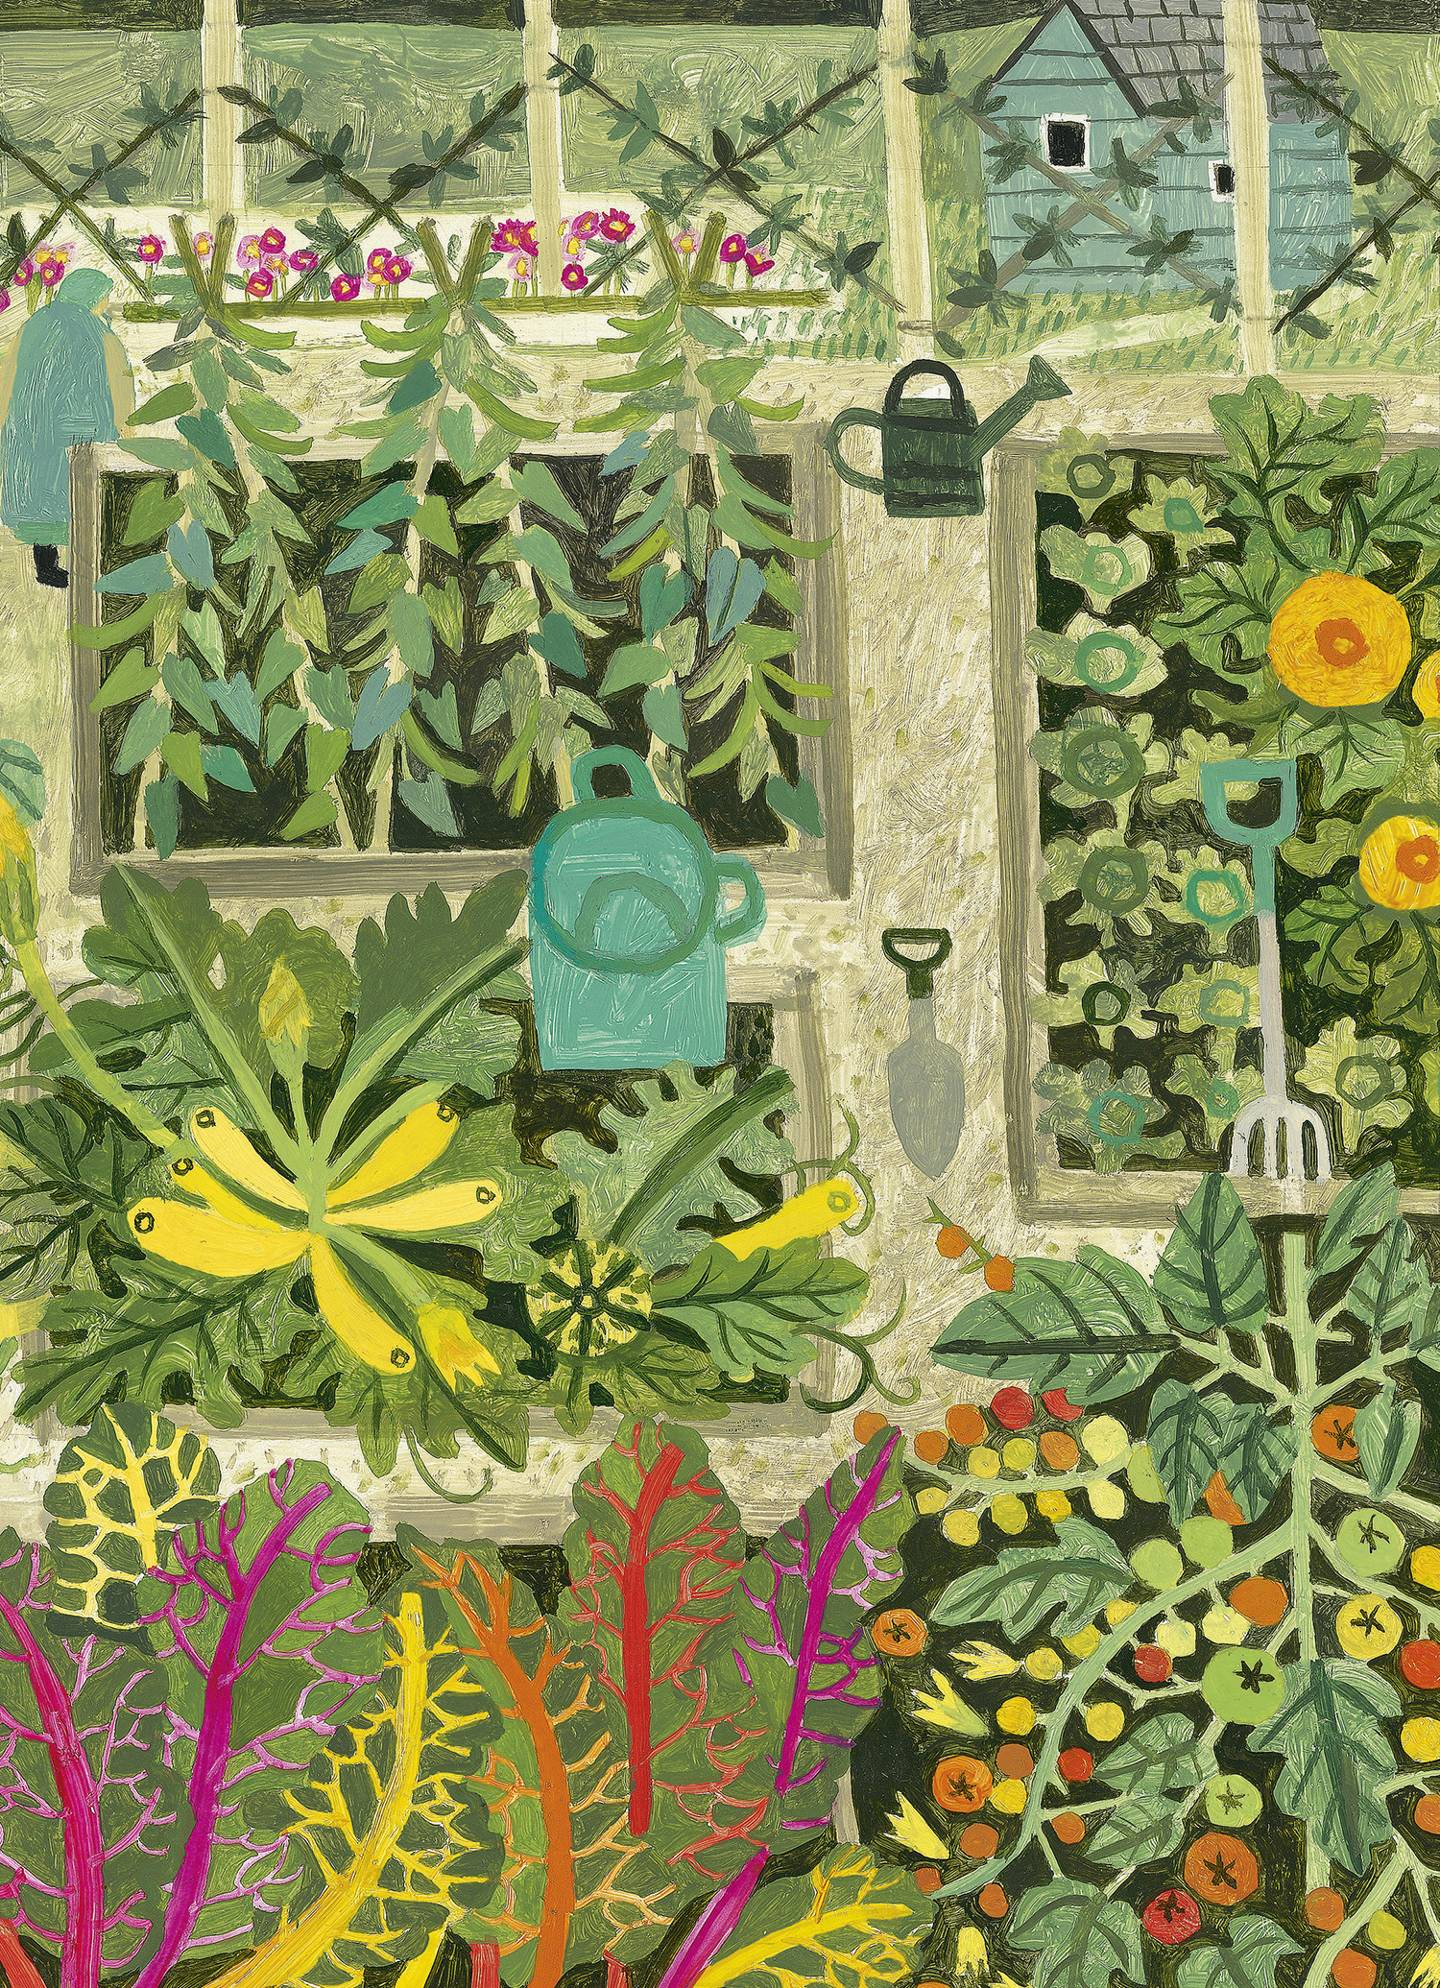 Clare Foster's diary of a new garden: encouraging plant growth